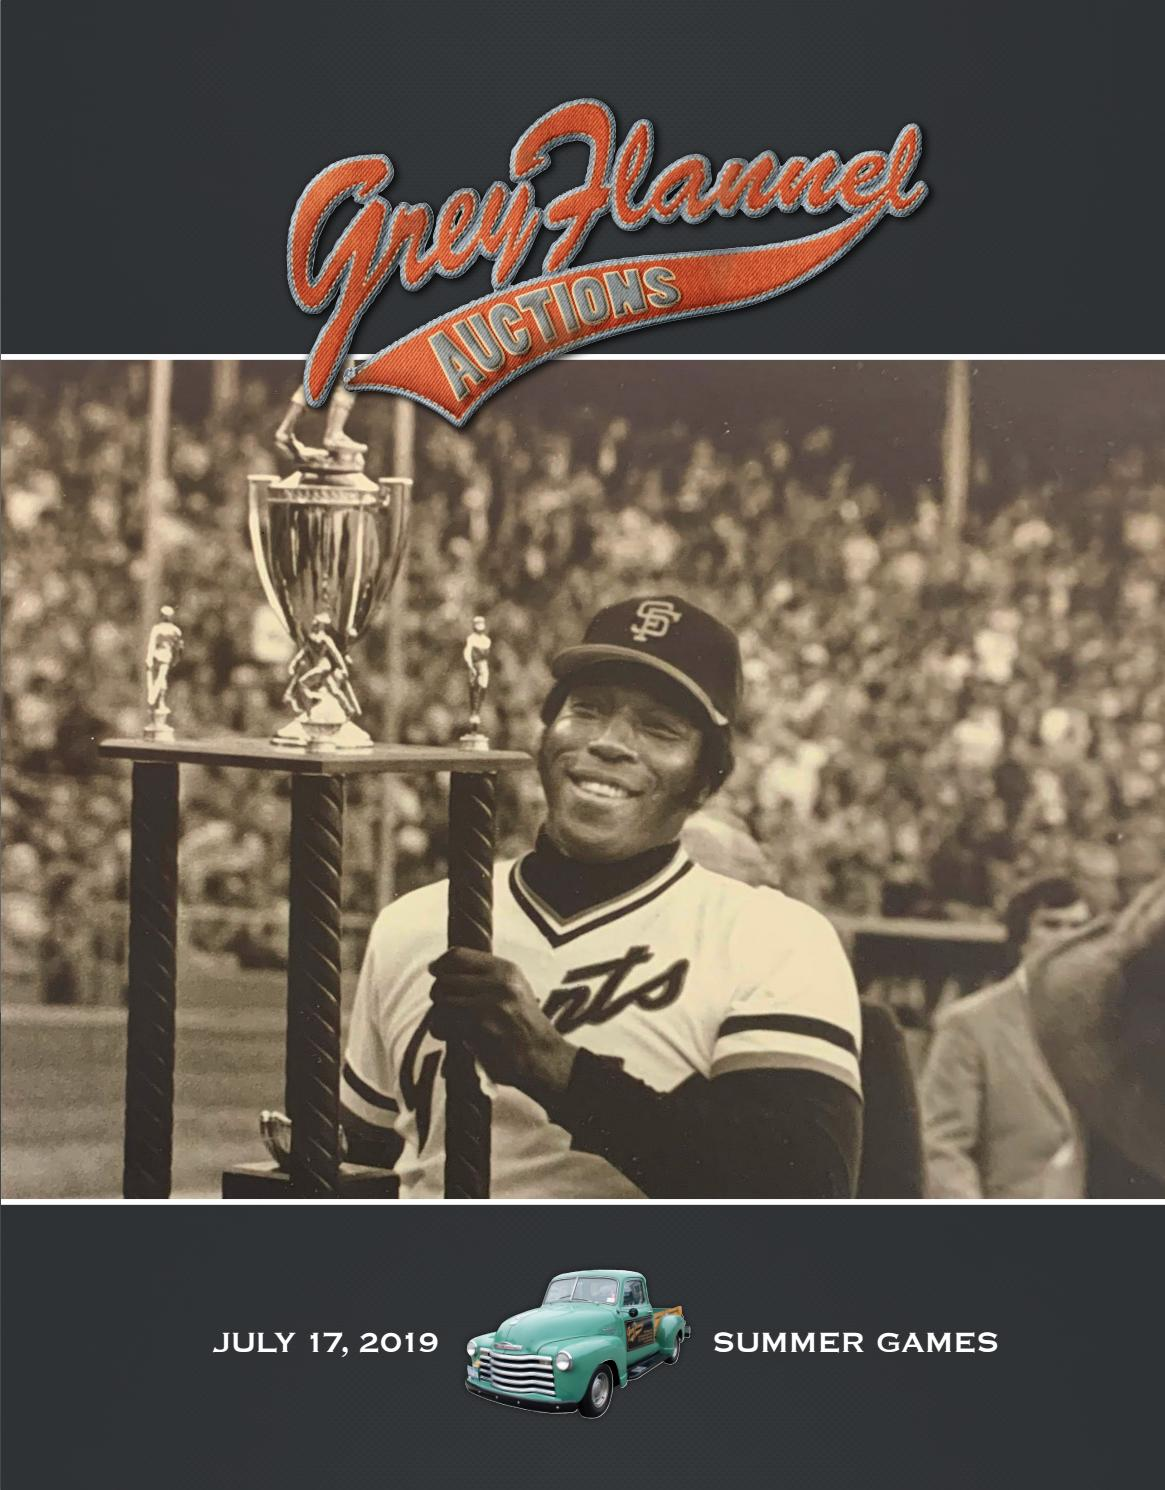 TIGERS ALAN TRAMMELL ENGRAVED CAREER NAMEPLATE FOR PHOTO//DISPLAY//POSTER